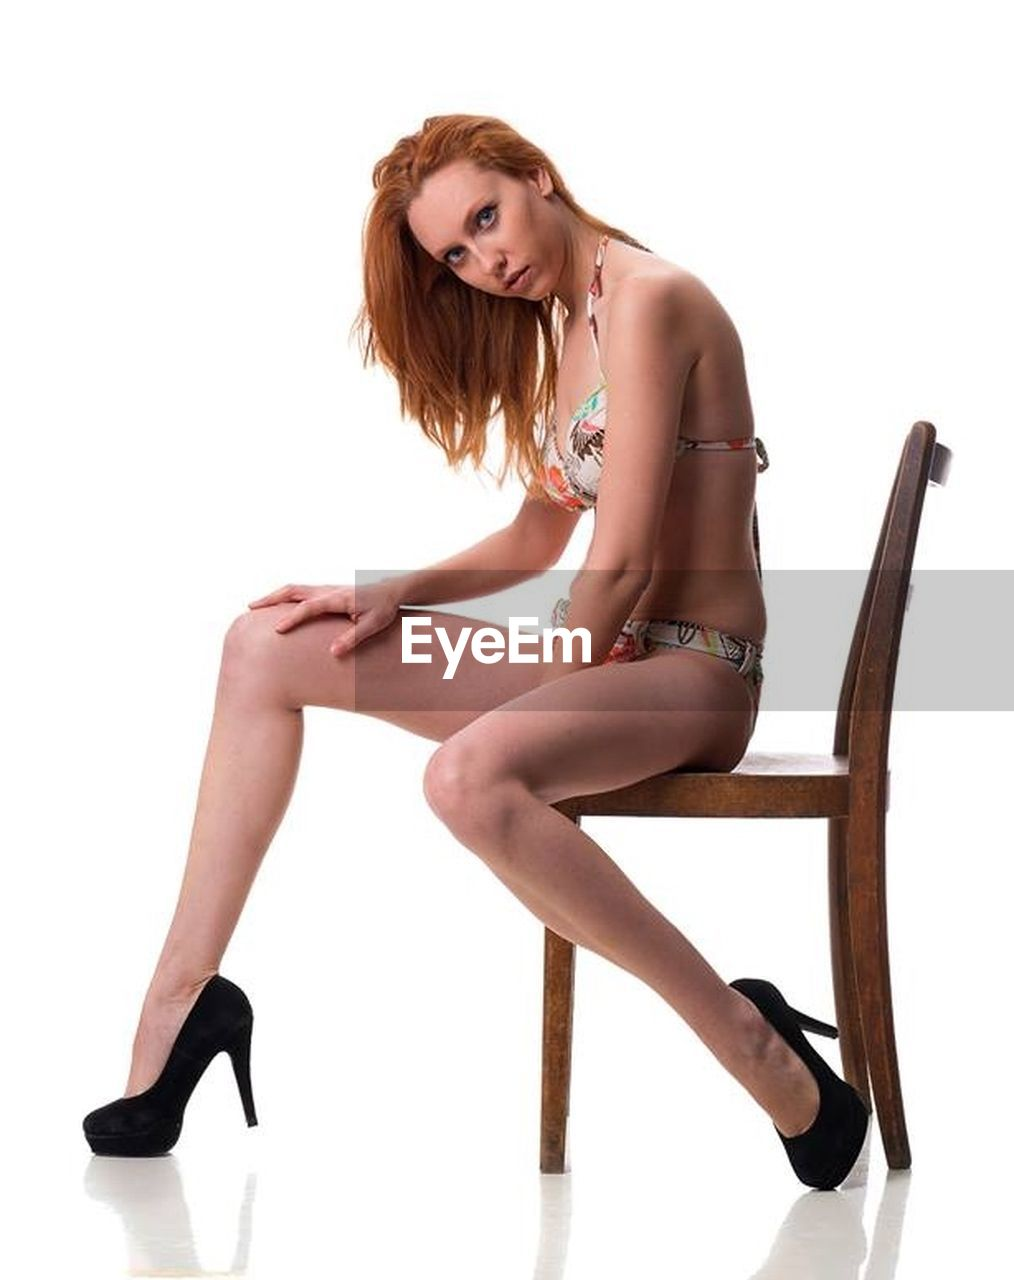 lingerie, limb, white background, sitting, beautiful people, beauty, high heels, human leg, studio shot, beautiful woman, one young woman only, young adult, adult, one person, only women, one woman only, human body part, females, portrait, shoe, young women, full length, people, adults only, women, fashion model